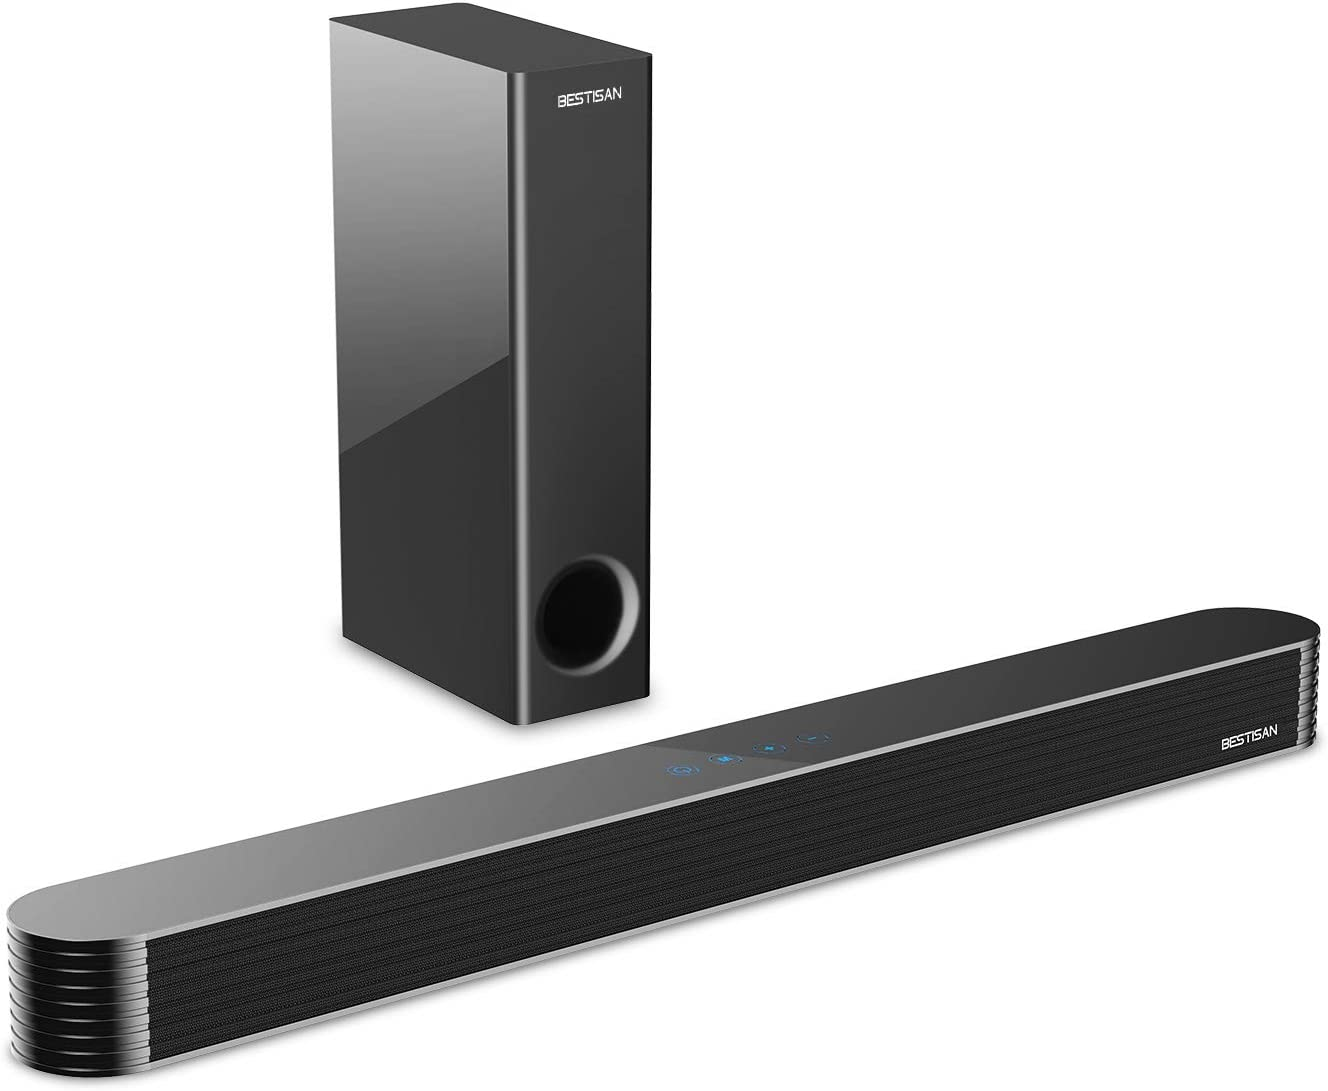 Sound Bar, BESTISAN TV Sound bar with Subwoofer, 120W 2.1CH Soundbar, Wired&Wireless Bluetooth 5.0 Speaker, Home Audio System for TV, 27 Inch, Wall Mountable, Treble/bass Adjustable, Optical/Aux/USB